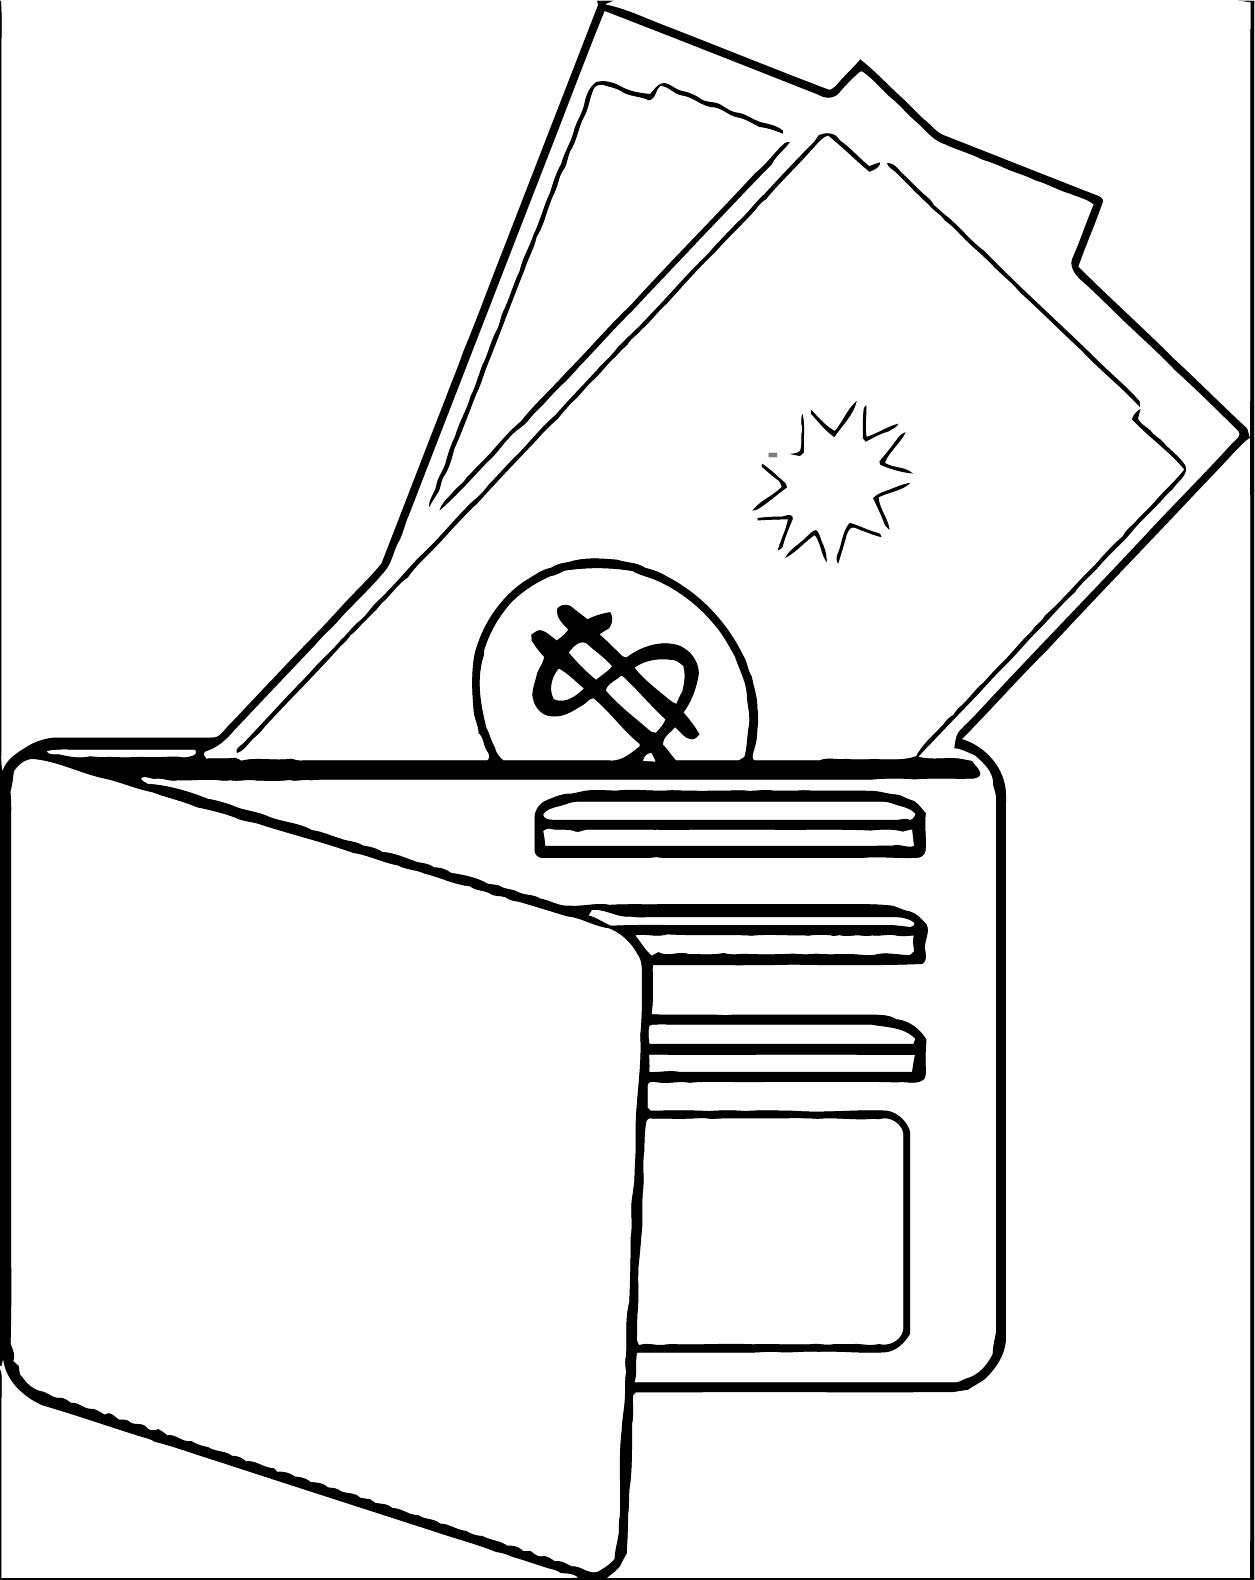 Wallet With Money And Credit Cards Coloring Page